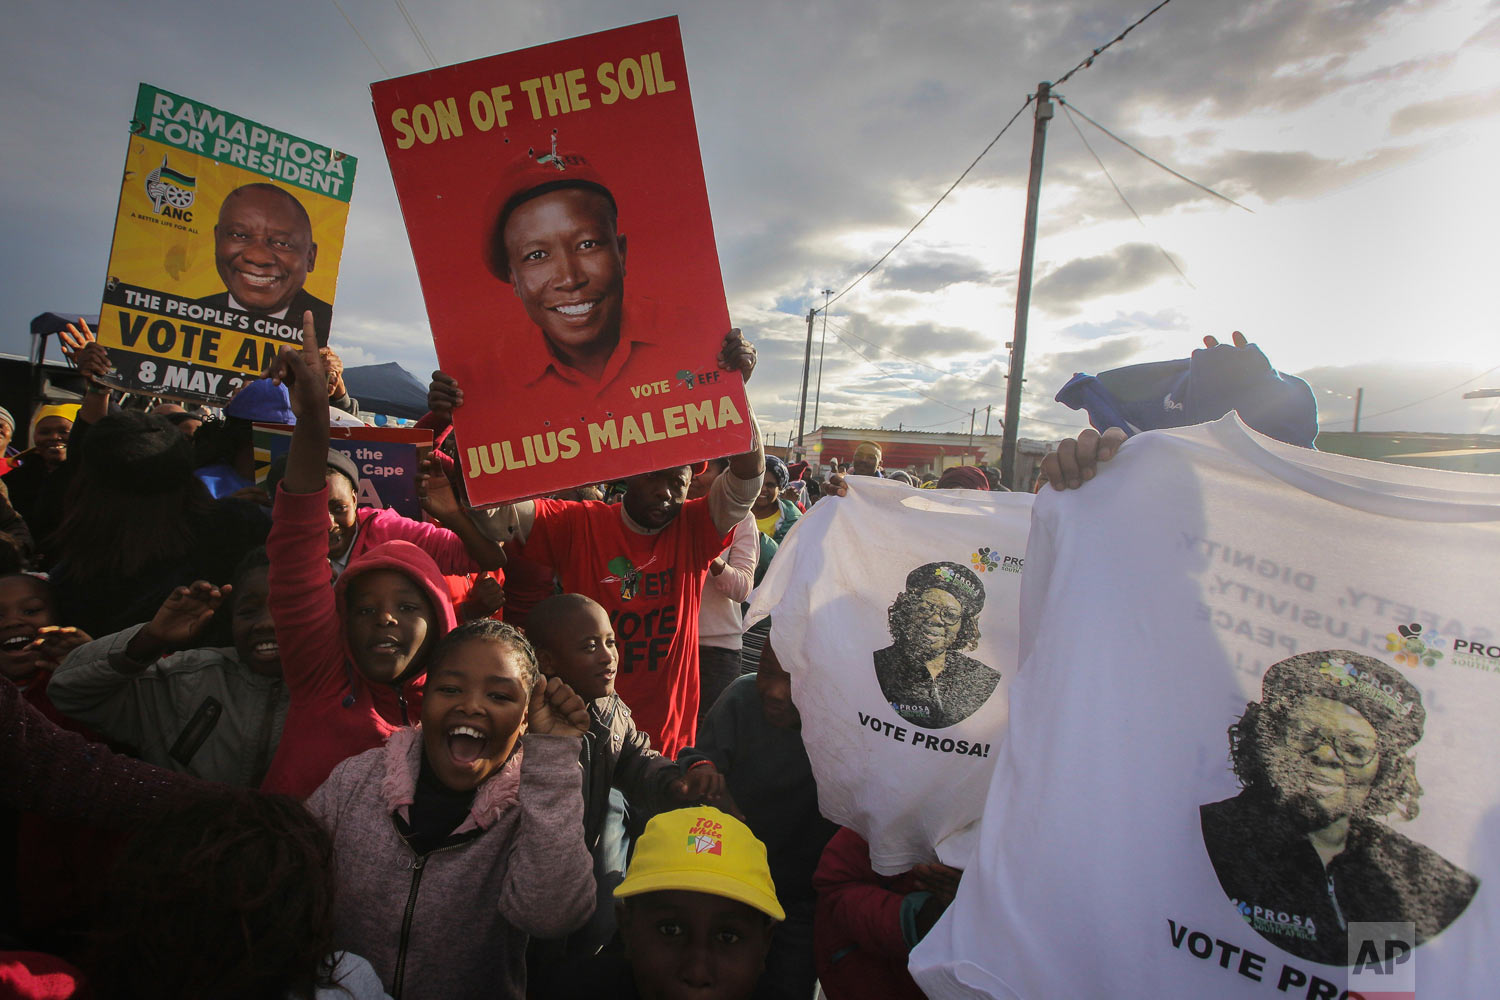 African National Congress (ANC) supporters, with green and yellow posters celebrate alongside rival Economic Freedom Fighters, (EFF) red posters, outside a voting station in Khayelitsha Township, Cape Town, South Africa, May 8, 2019. (AP Photo/Halden Krog)